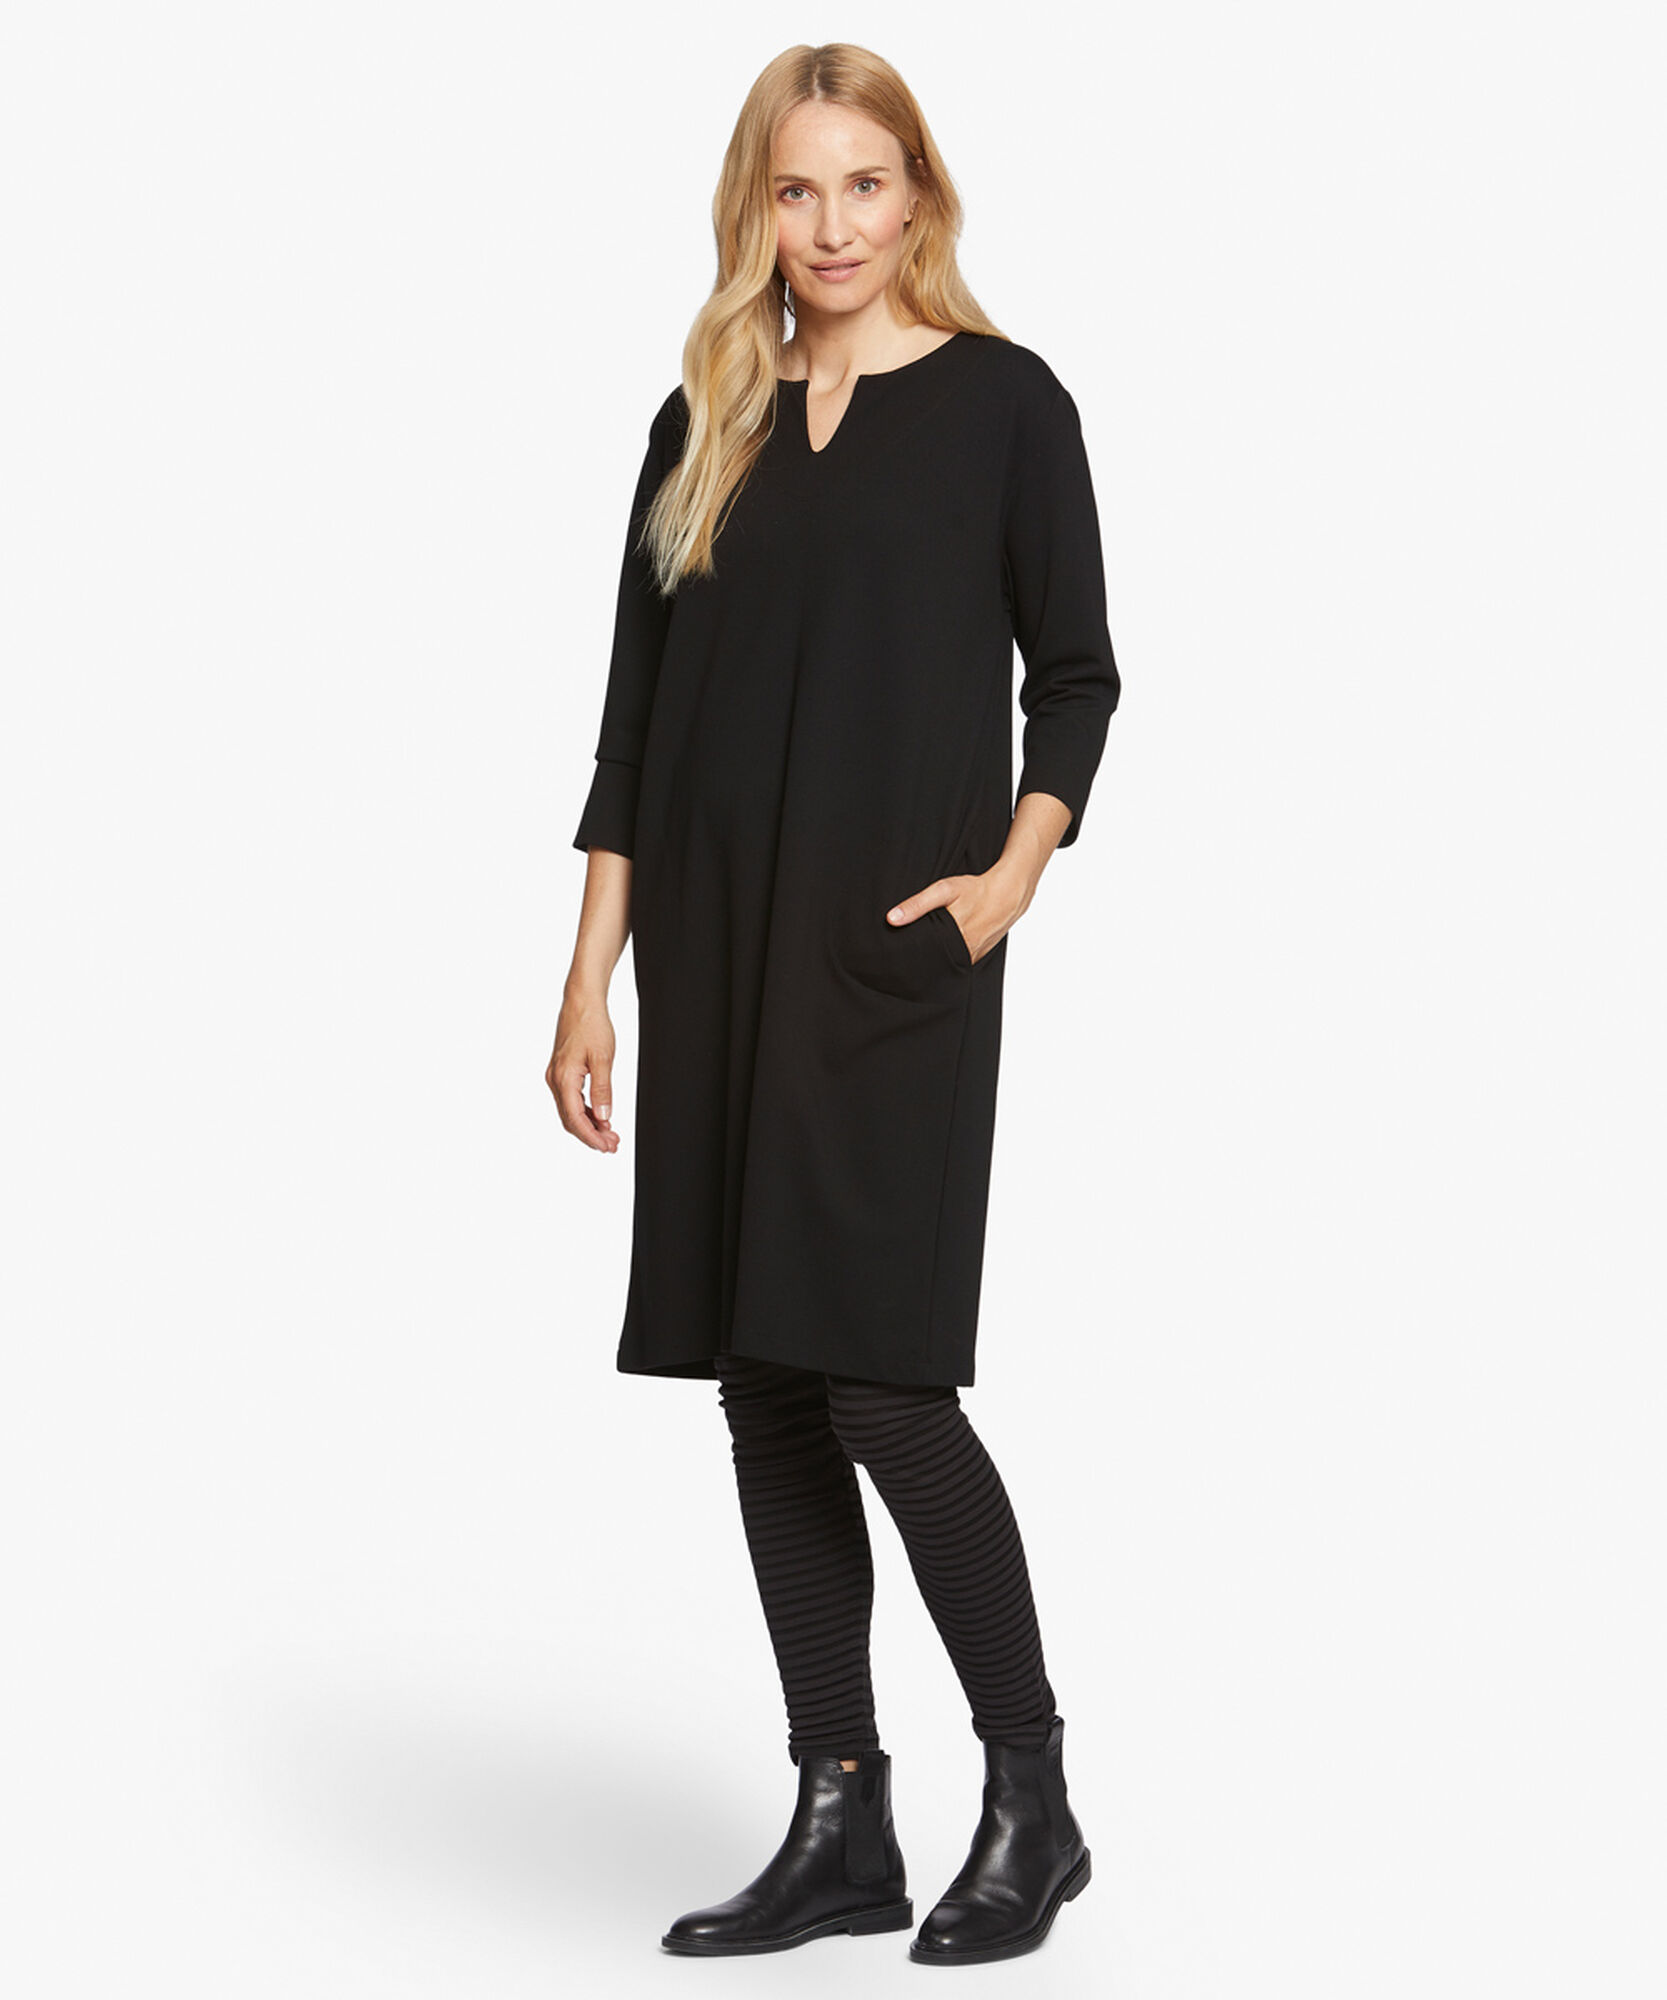 NIKINI DRESS, Black, hi-res